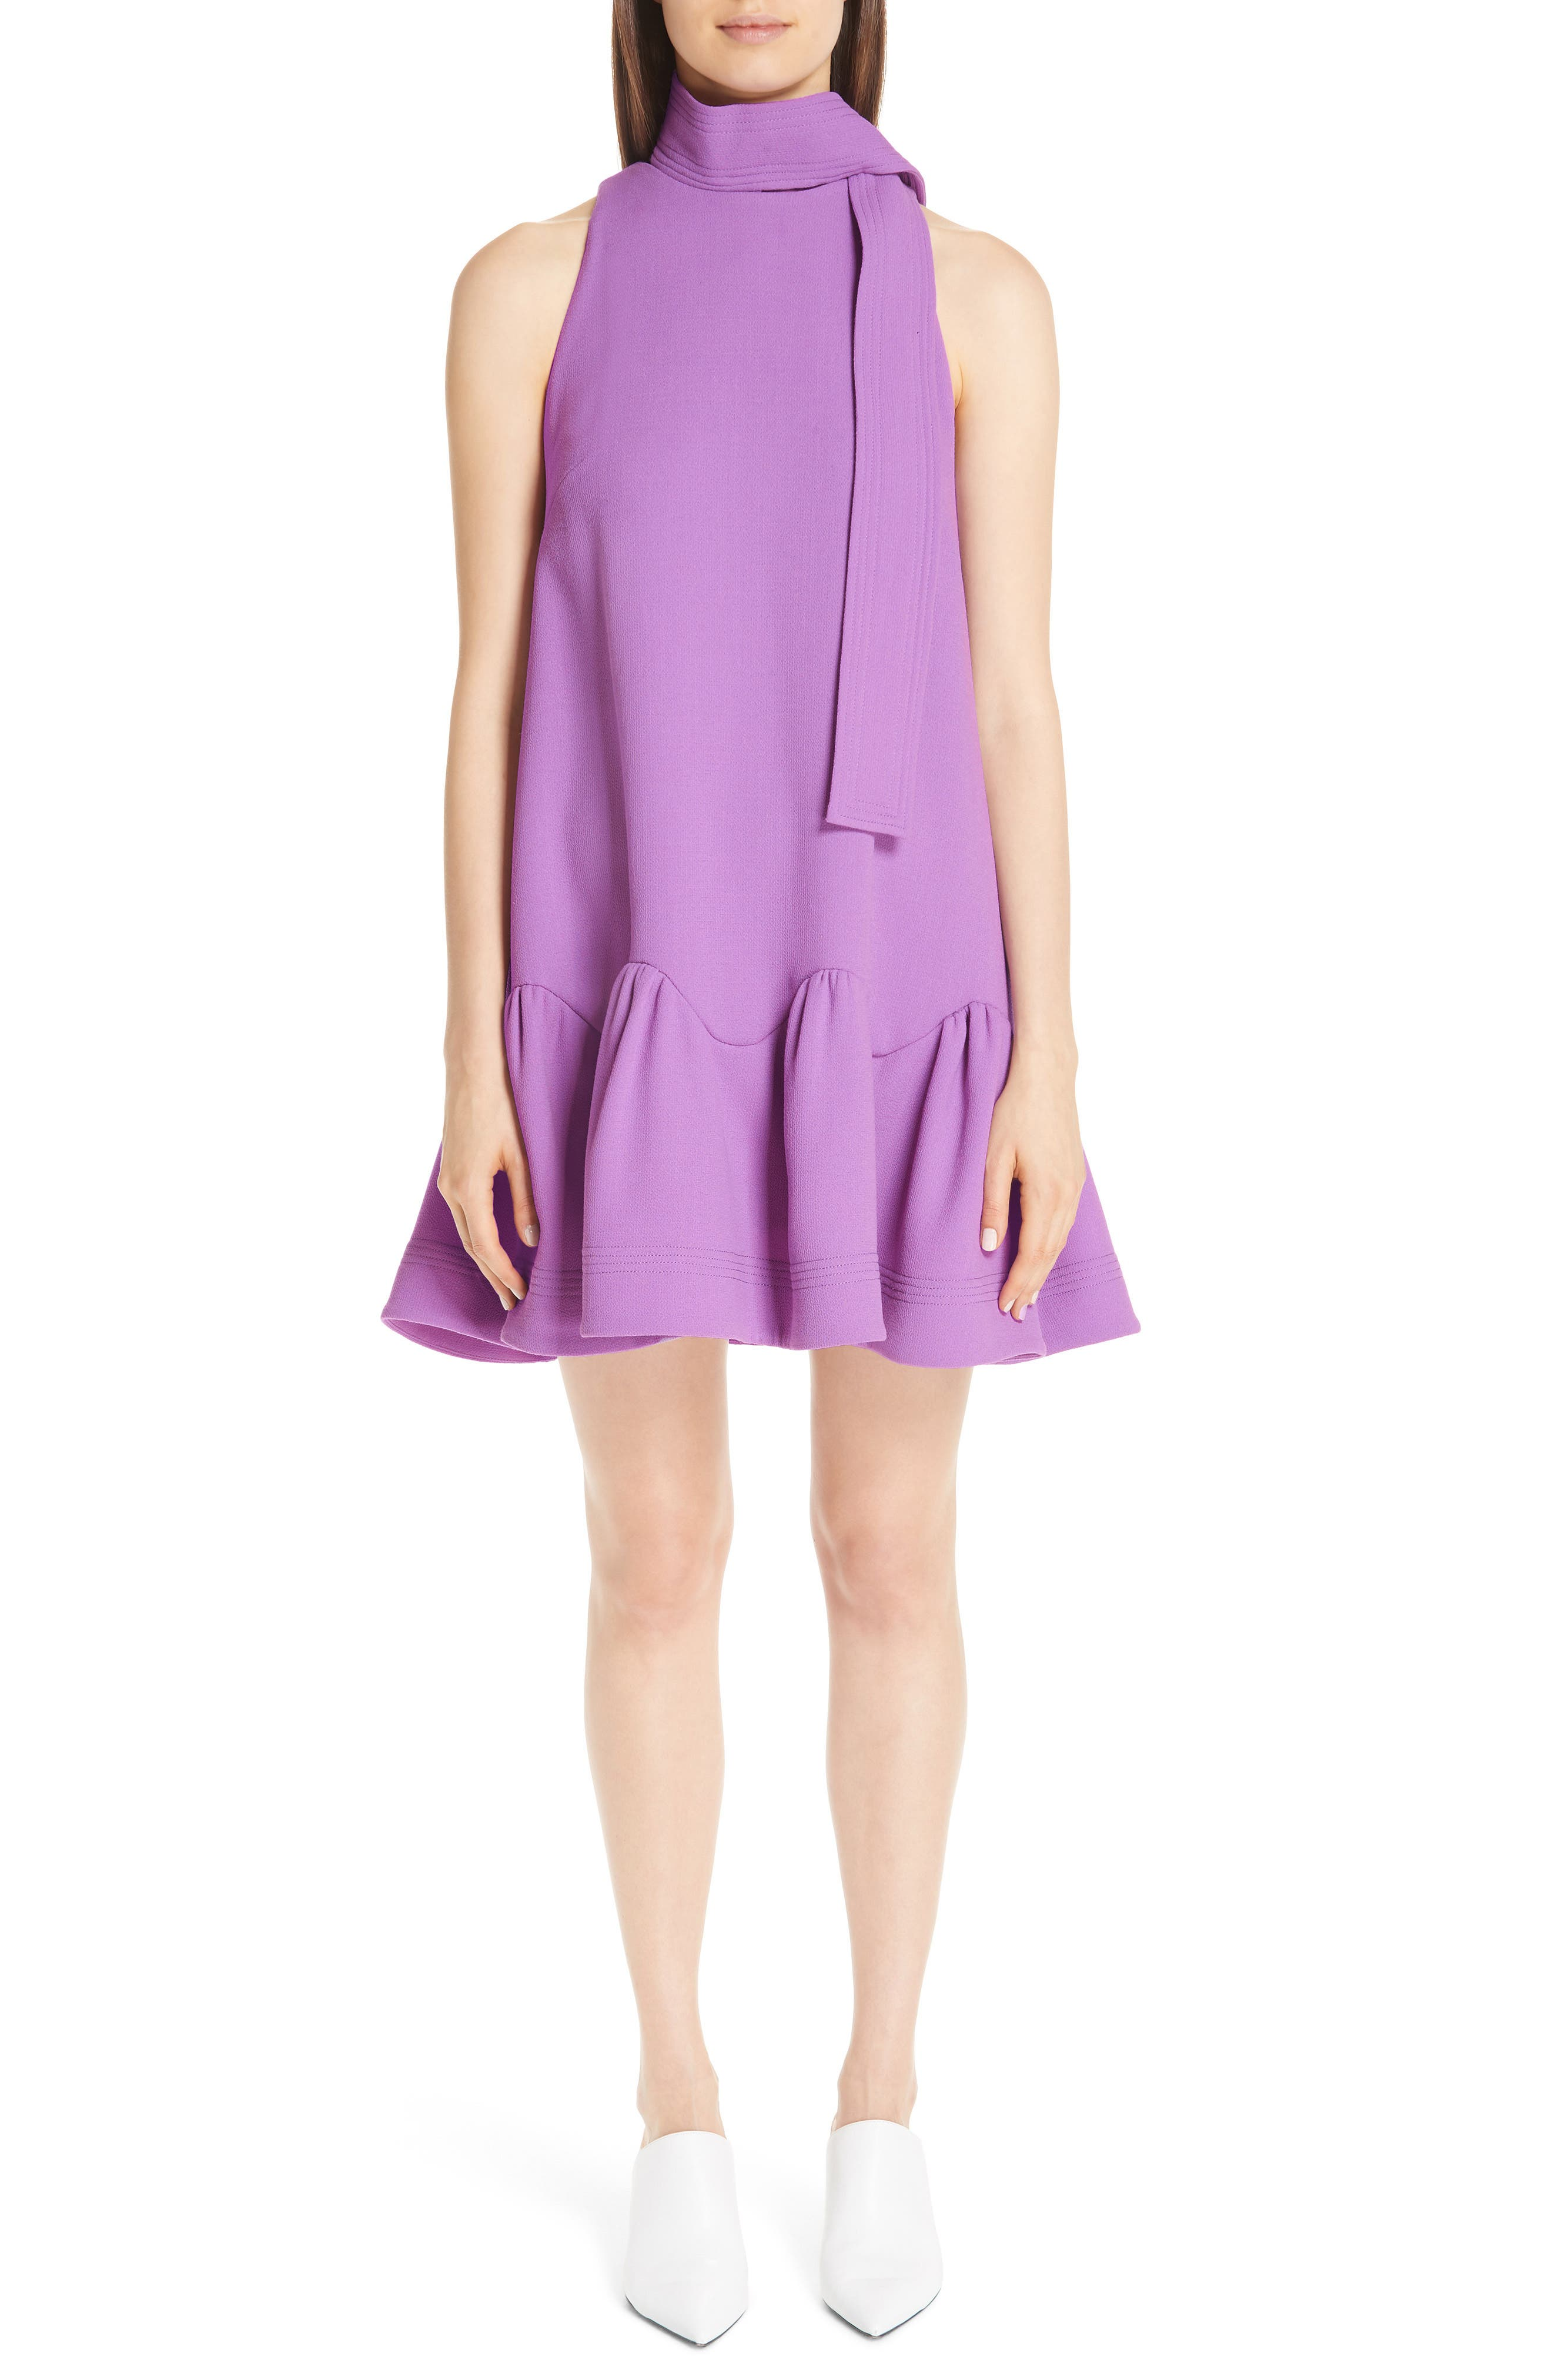 LELA ROSE Detachable-Collar Sleeveless Flounce-Hem Trapeze Dress in Lavender